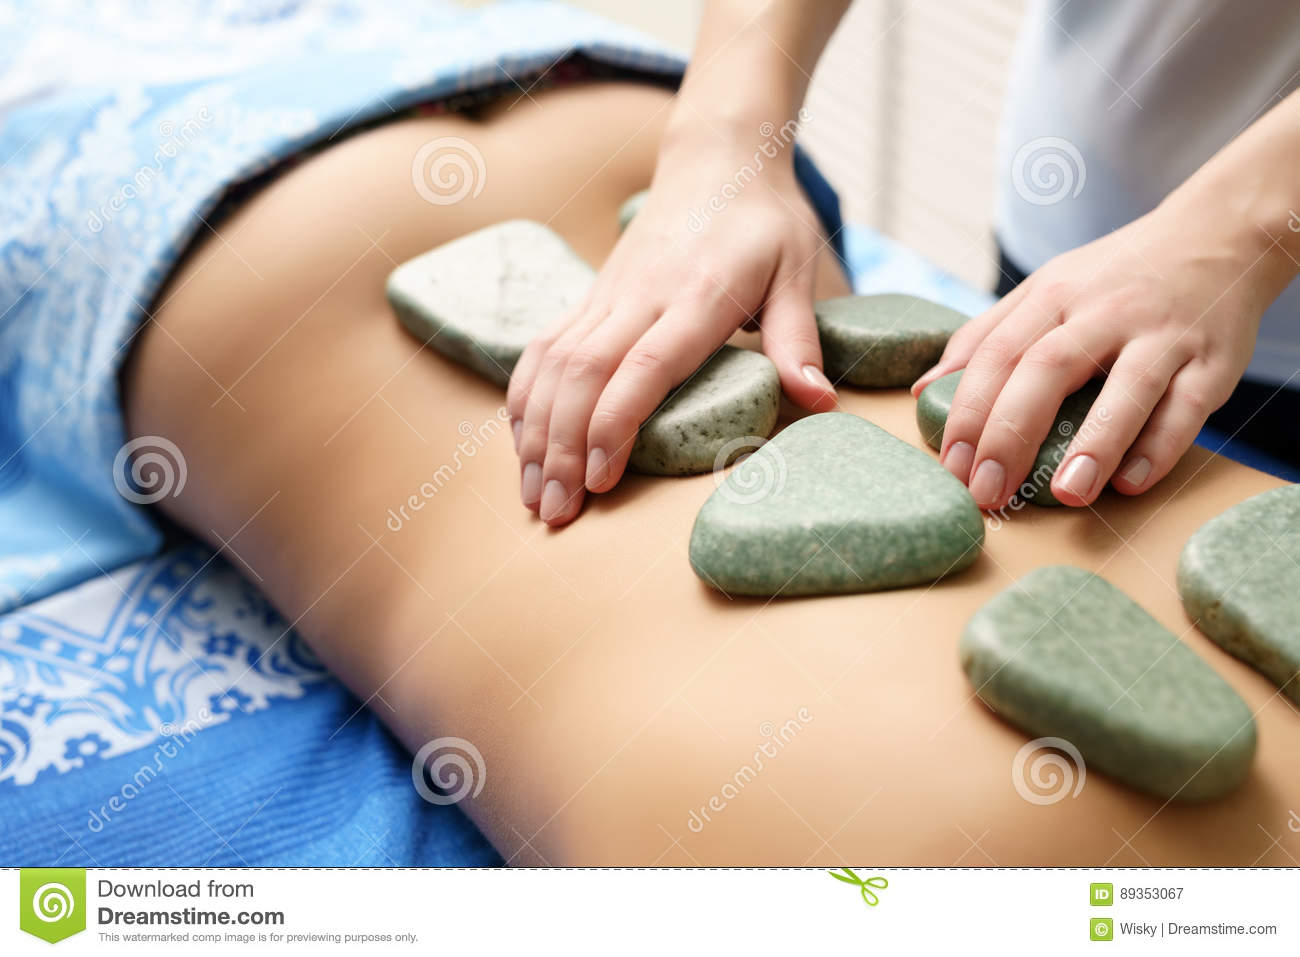 Girl laying on stomach getting a massage